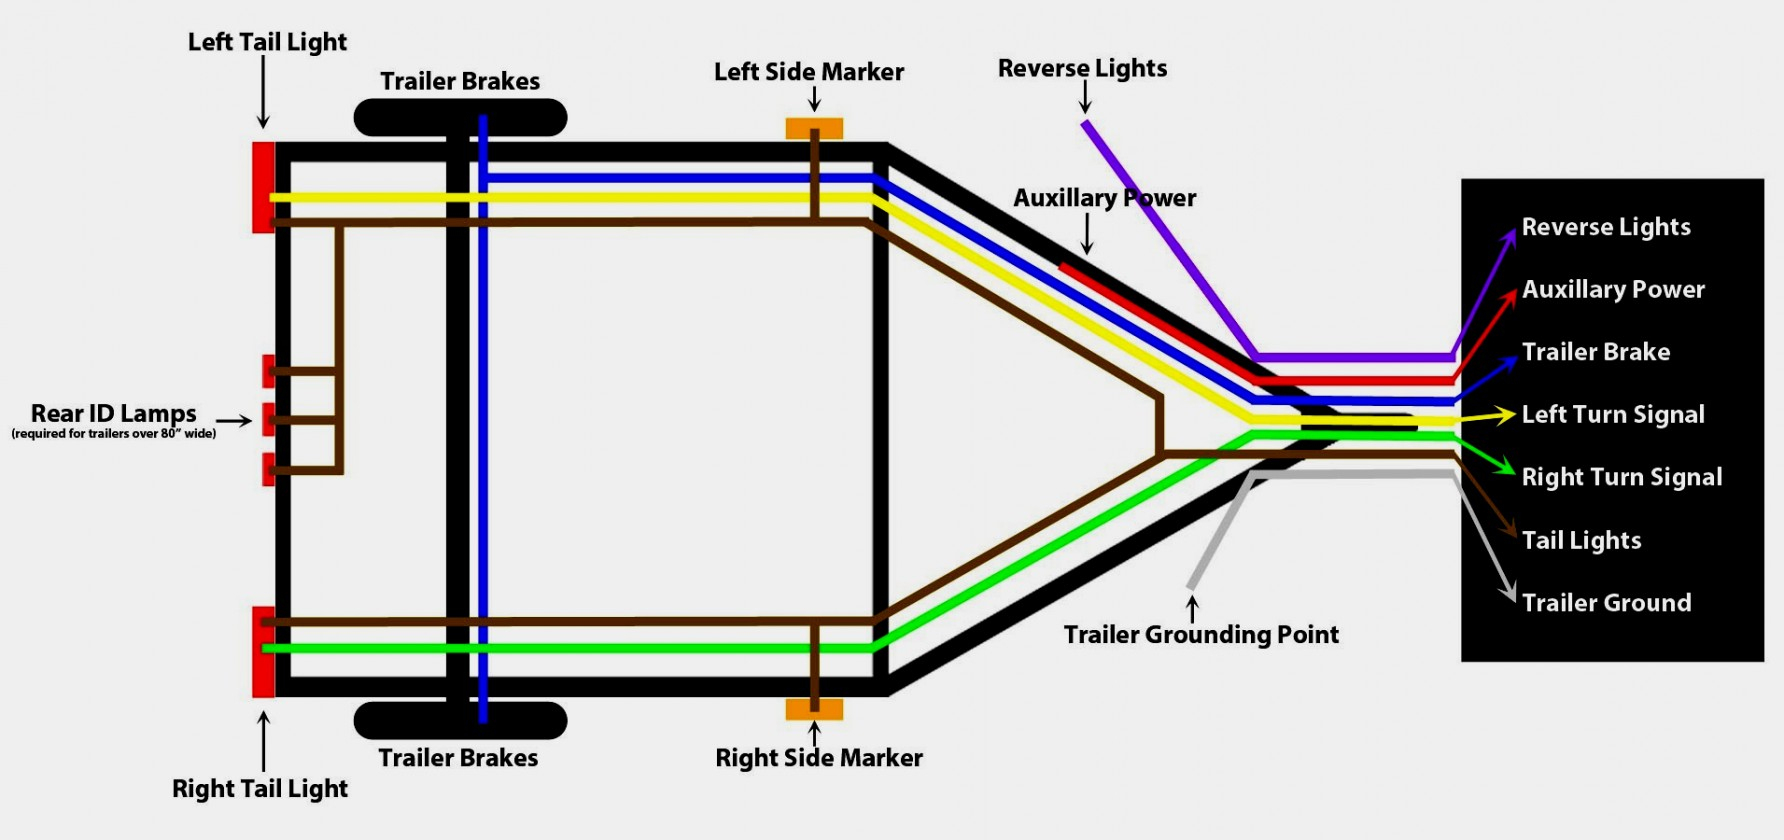 Wiring Diagram For Trailer Lights South Africa - Simple Wiring Diagram - Wiring Diagram Trailer South Africa